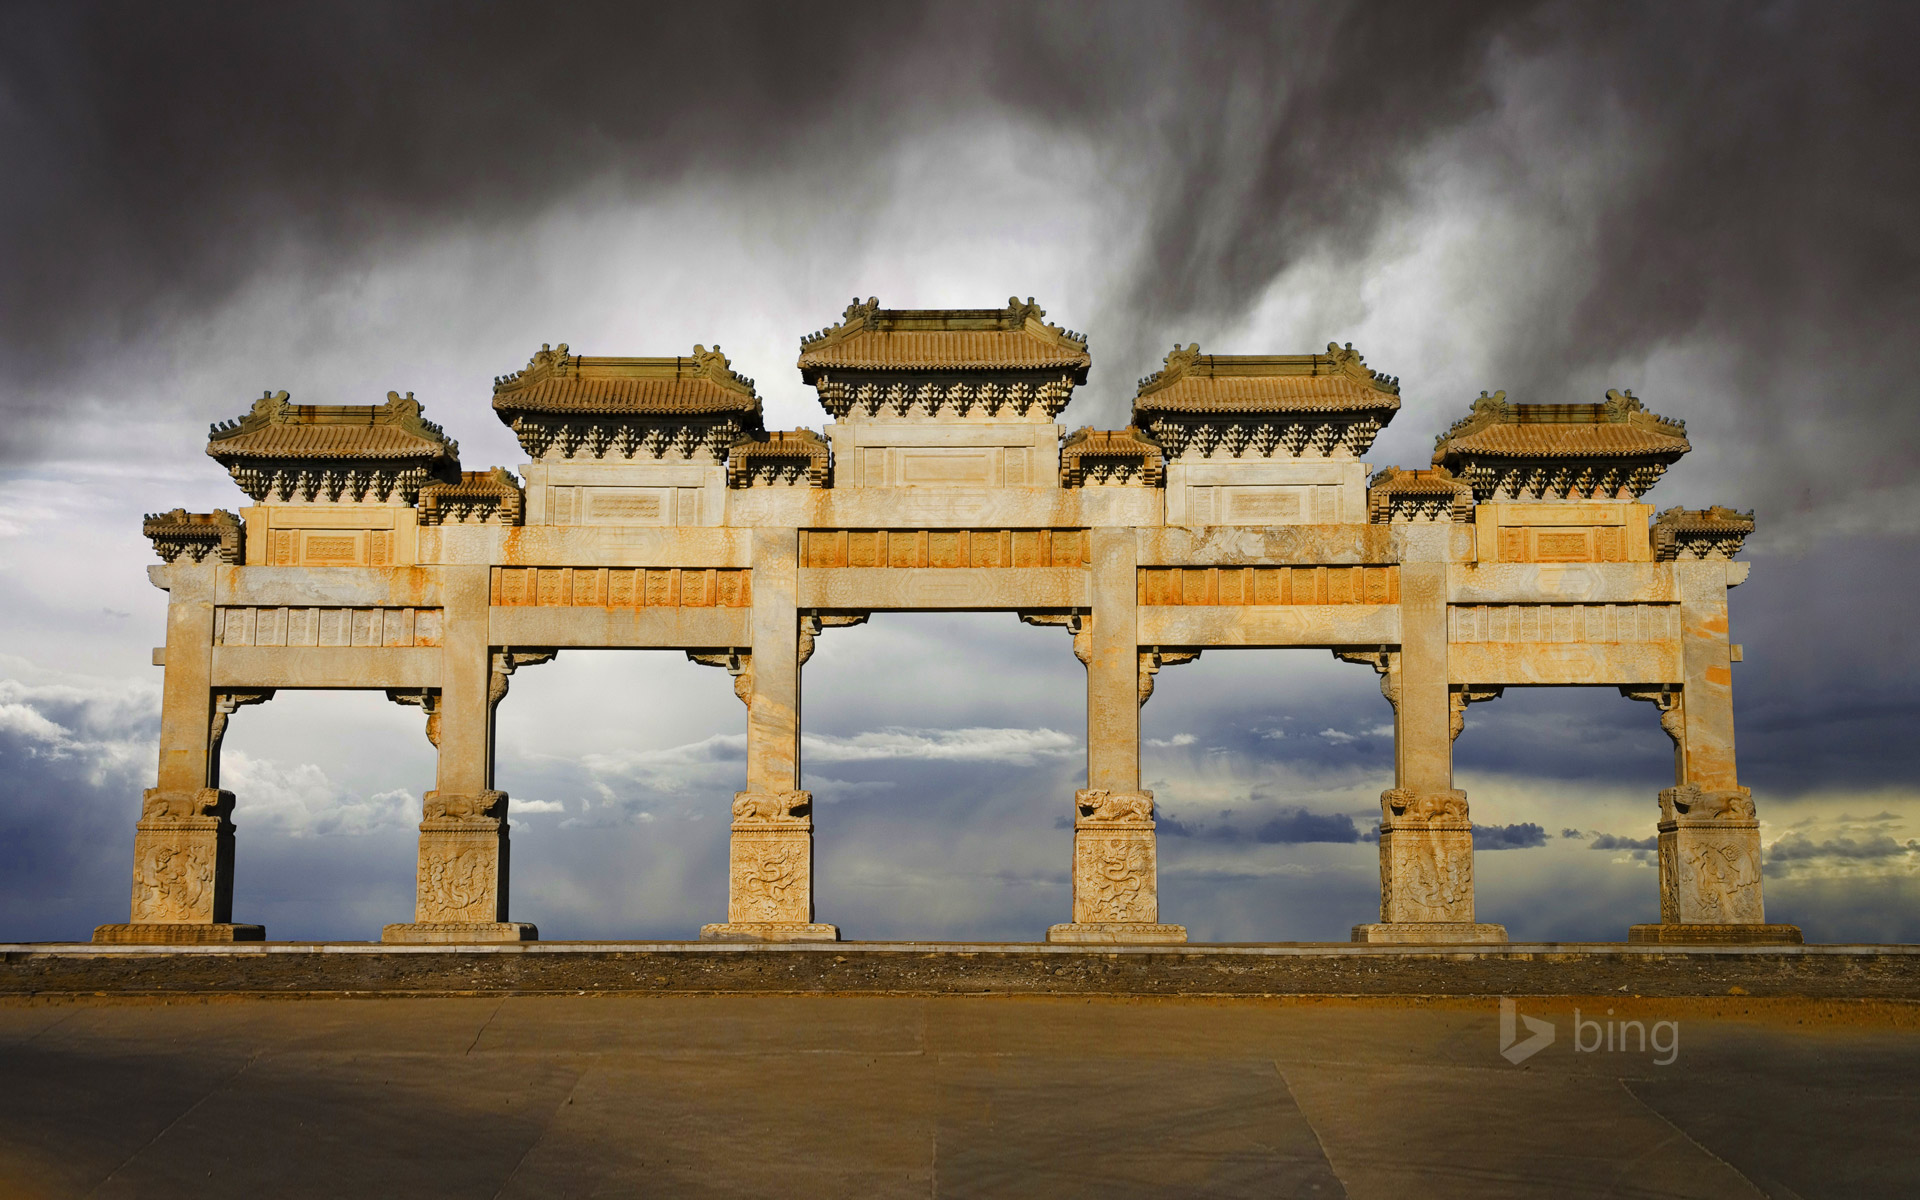 Eastern Qing Tombs, Hebei Province, China